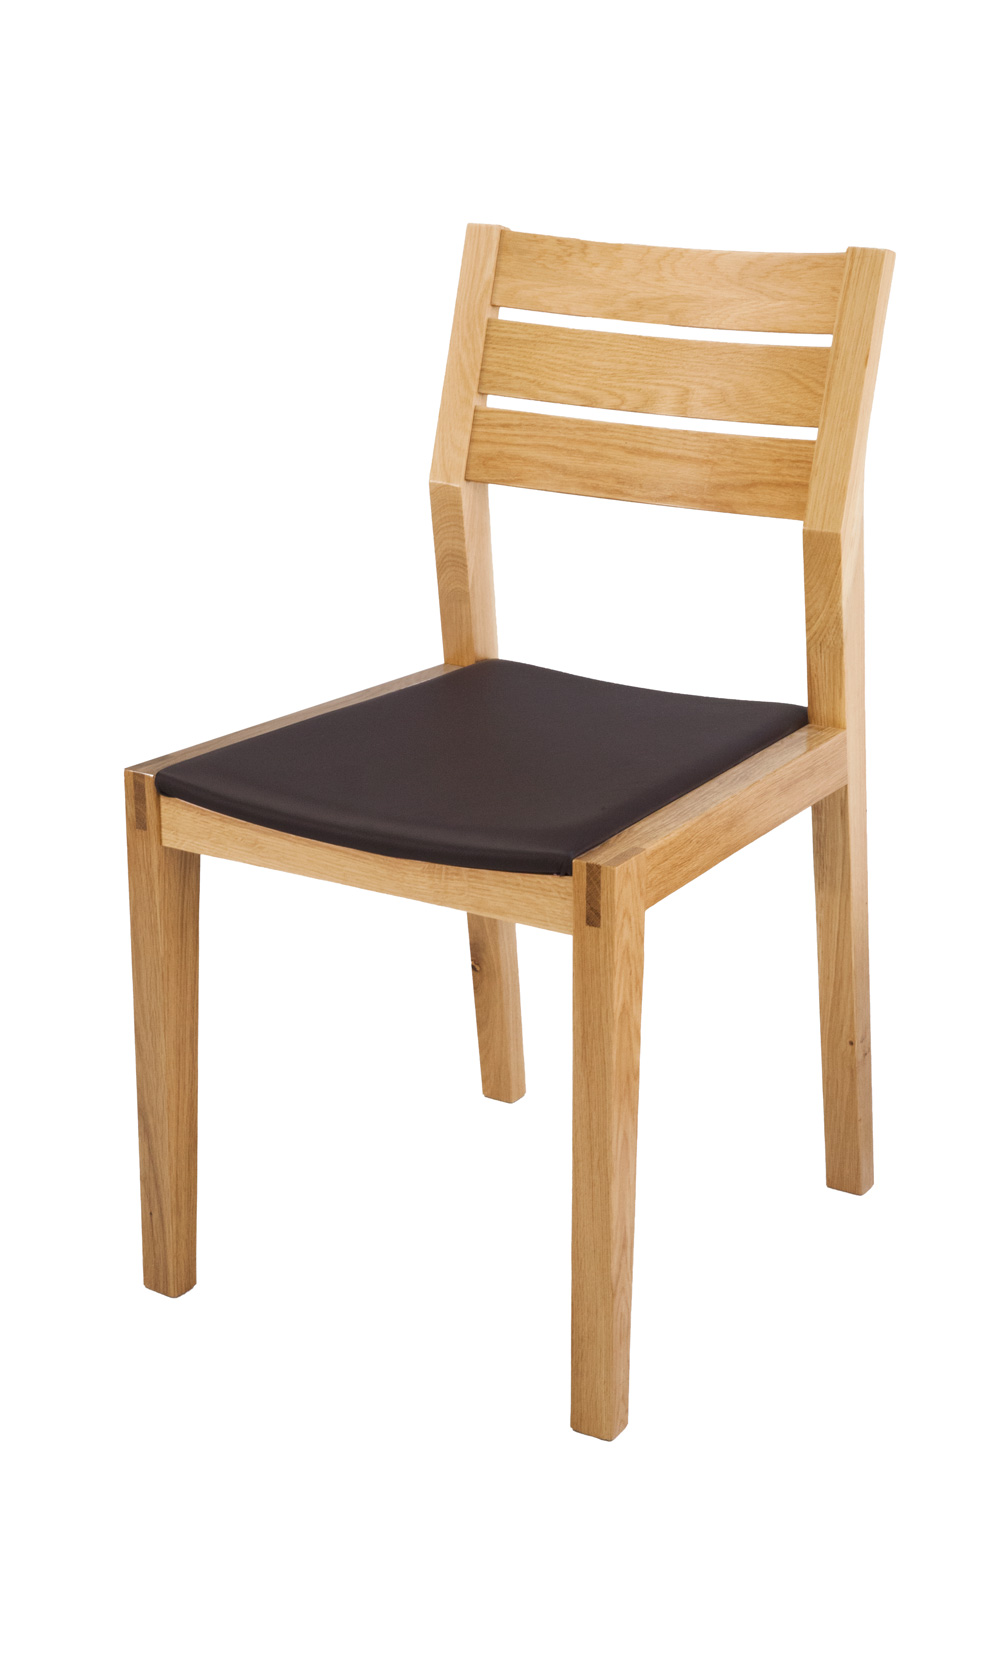 Twin Slat Beech Side Chair with a Brown Leather Seat